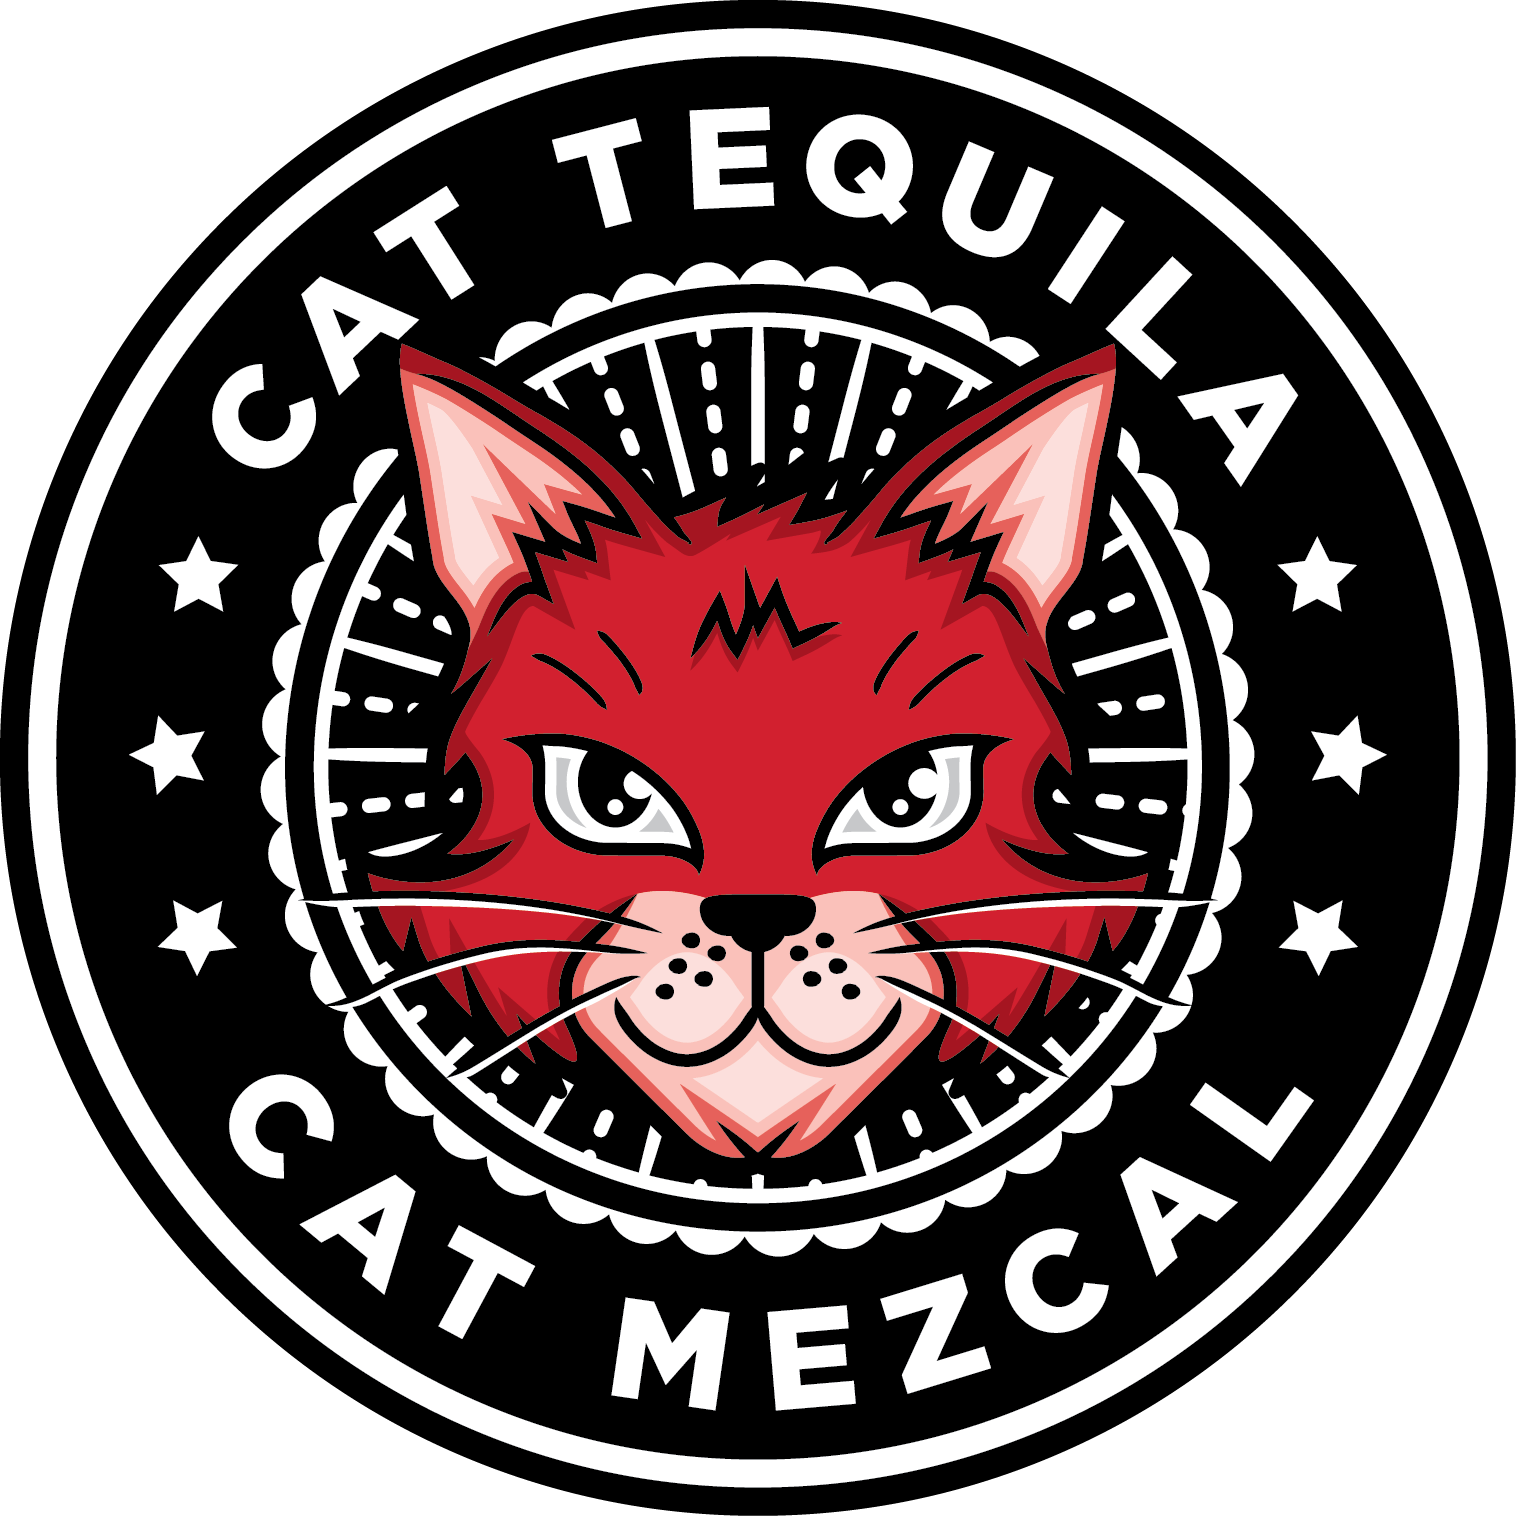 CatTequila_Logo.png